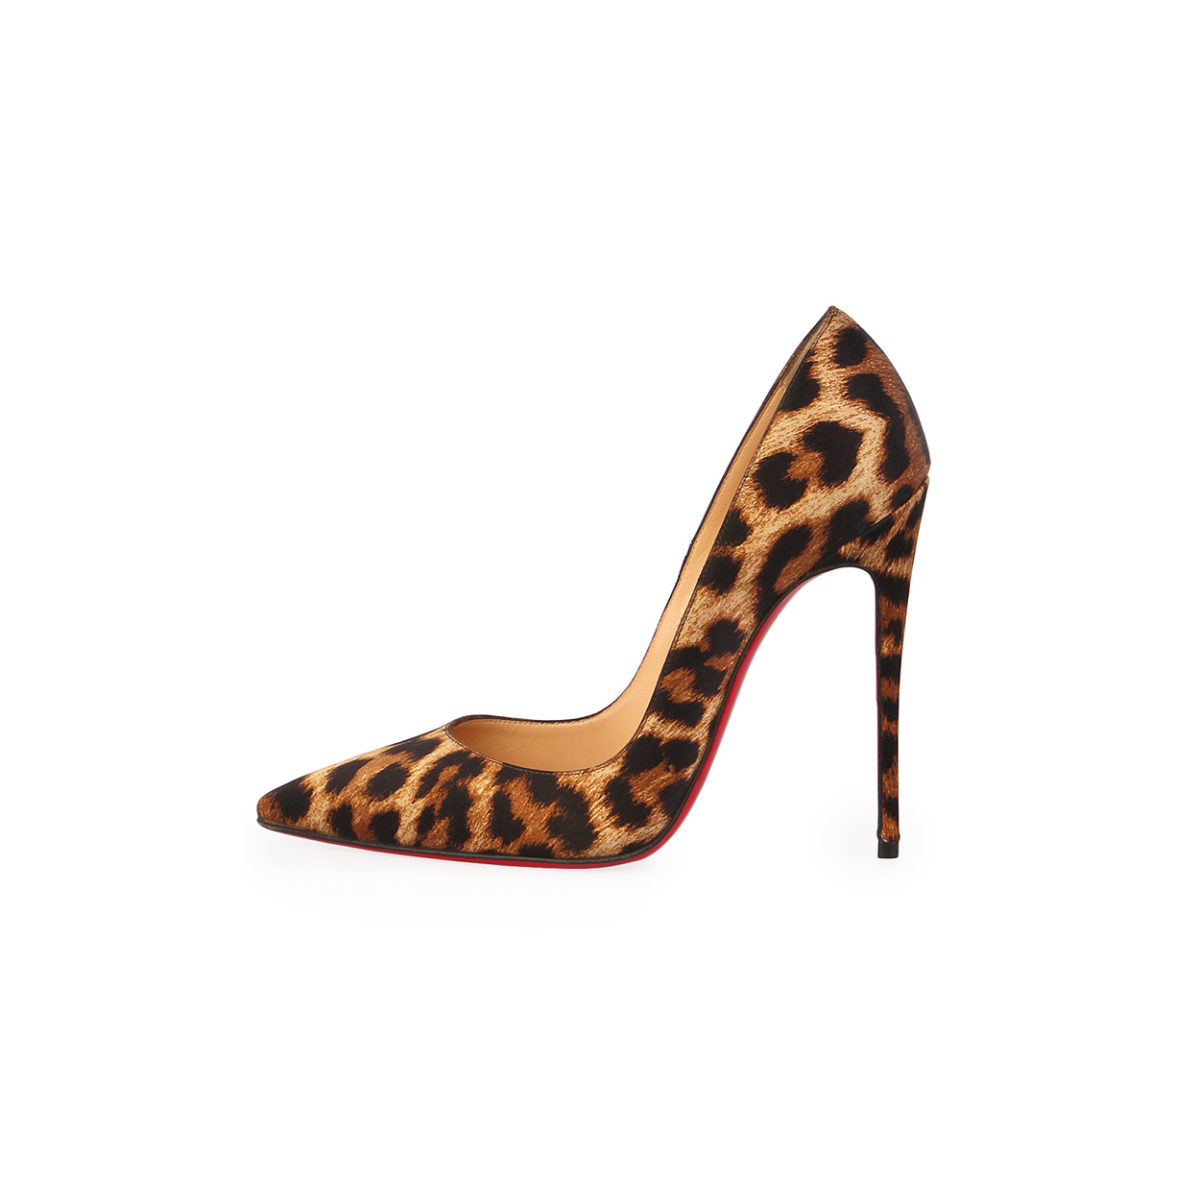 055e655d51f CHRISTIAN LOUBOUTIN Satin So Kate 120 Pumps Leopard Print - S: 36.5 (3.5)